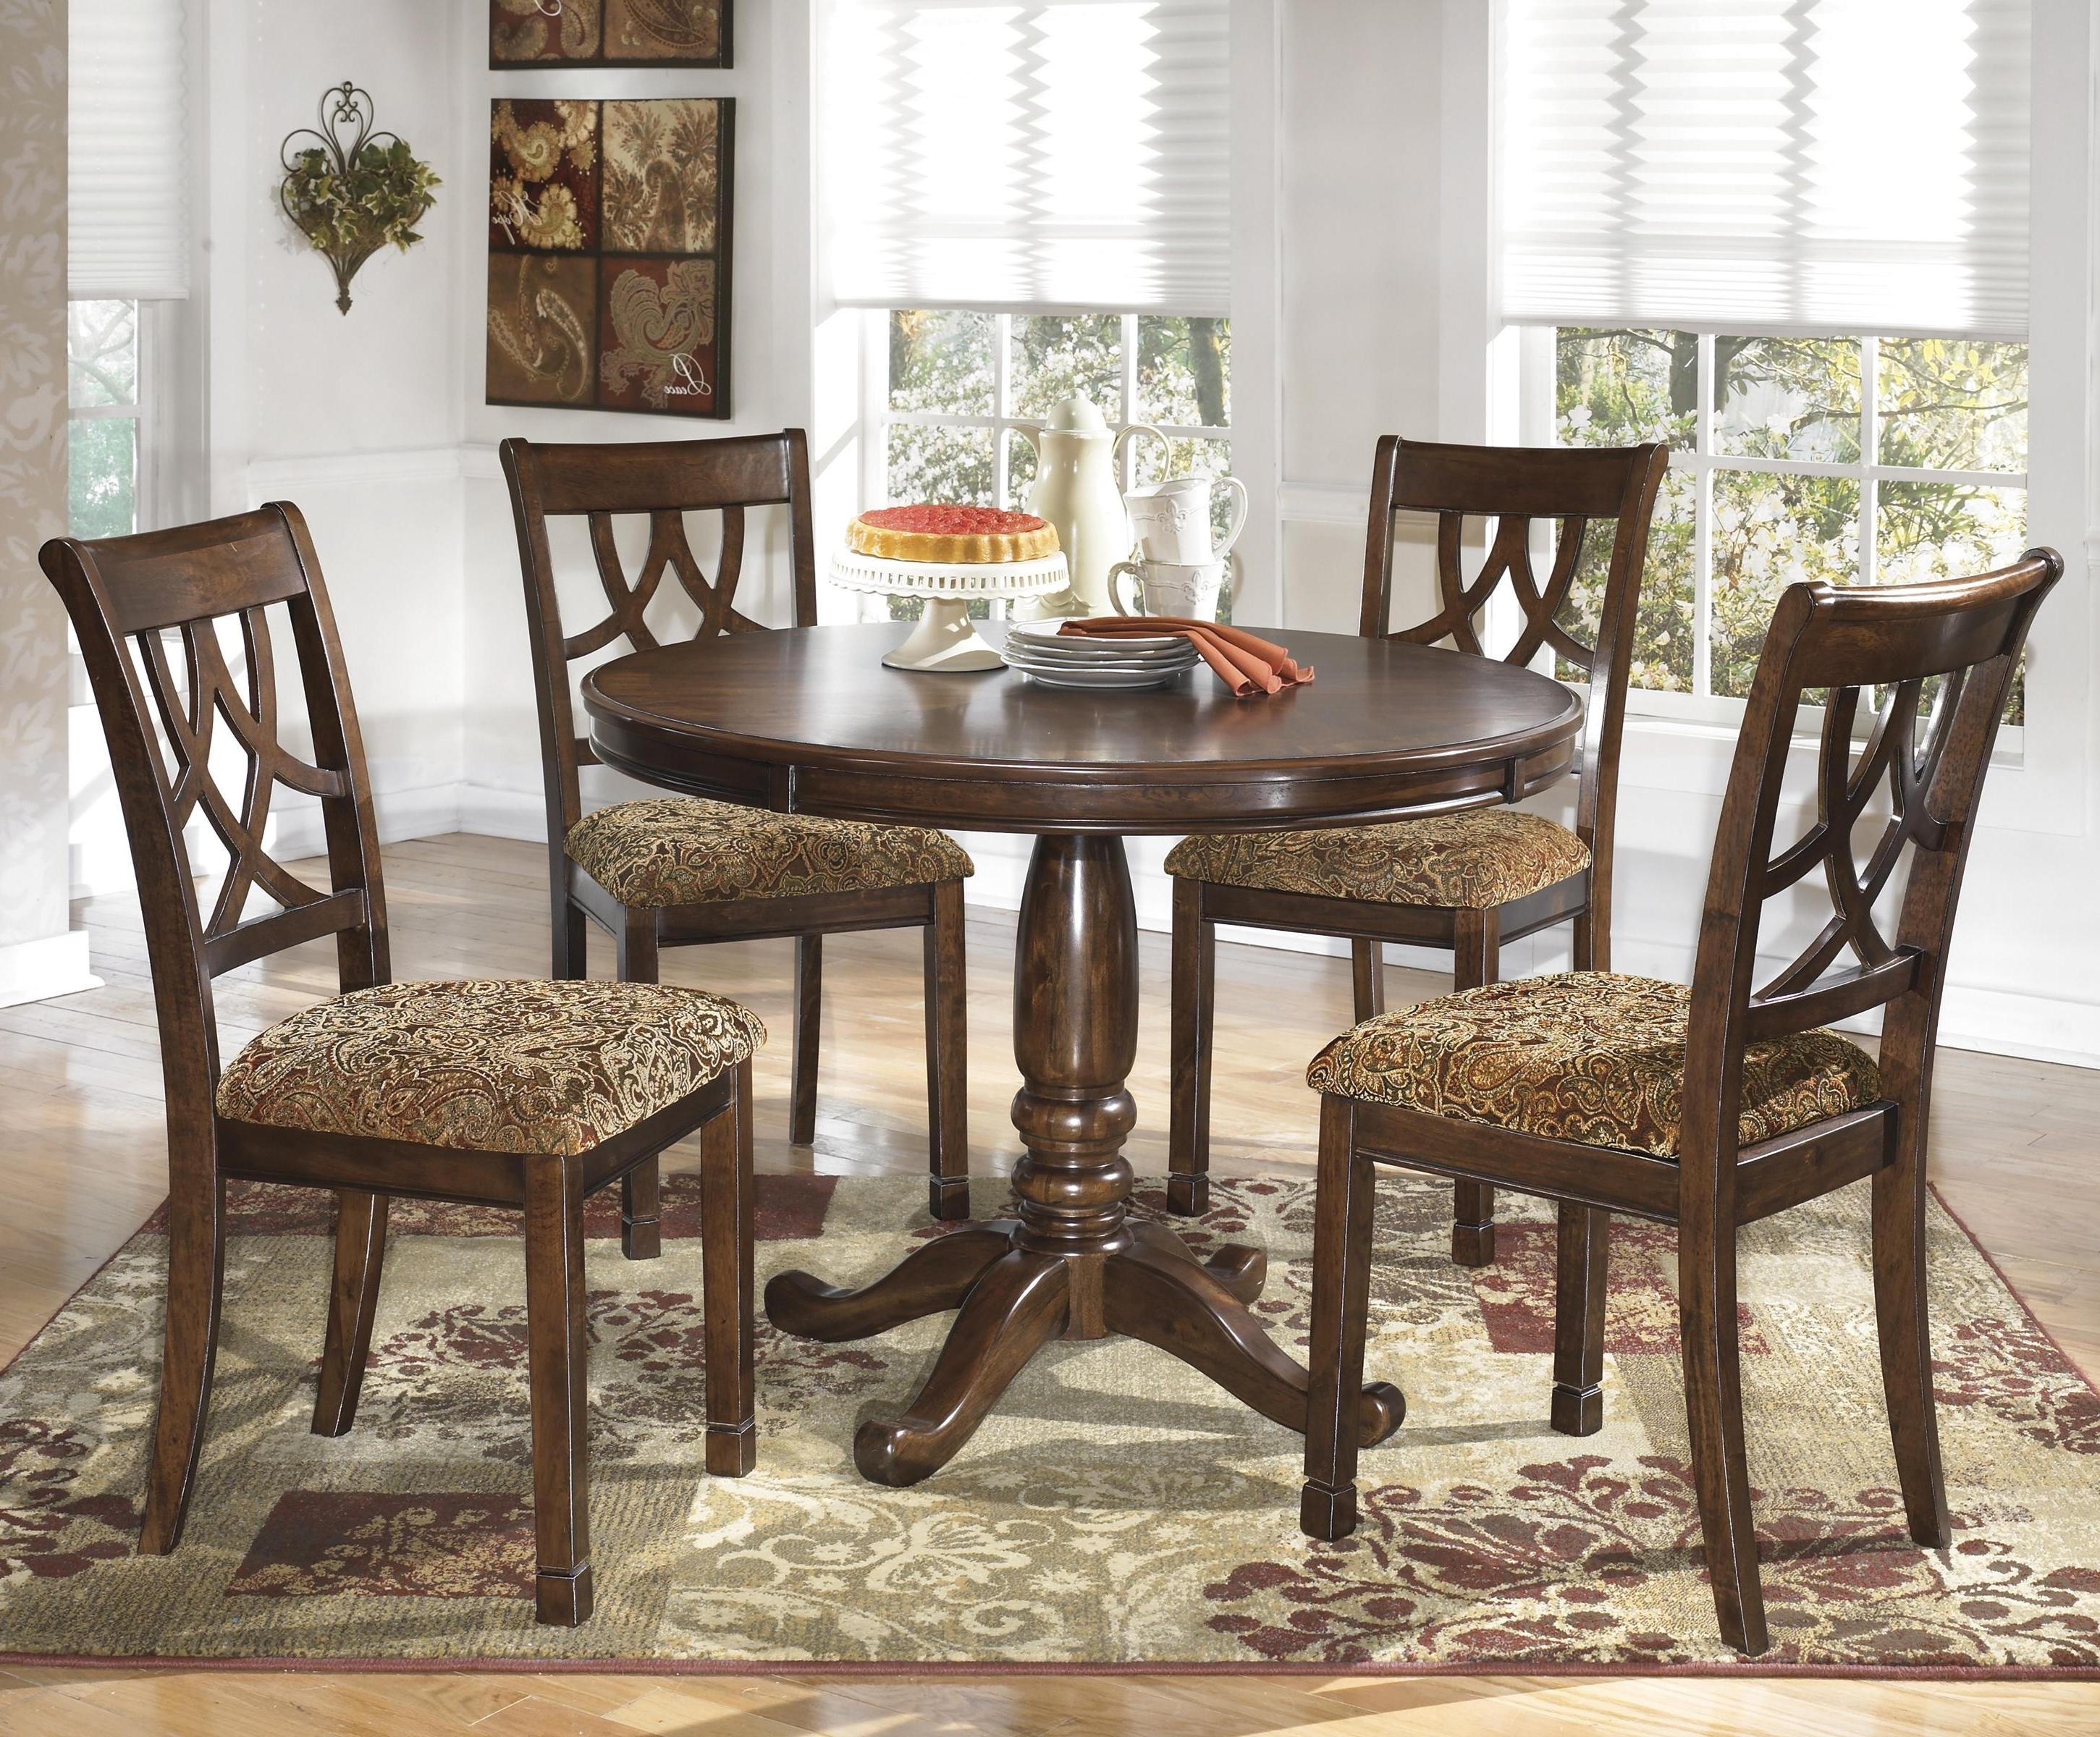 Signature Designashley Lila 5 Piece Cherry Finish Round Dining With Regard To Best And Newest Dining Tables Sets (View 25 of 25)